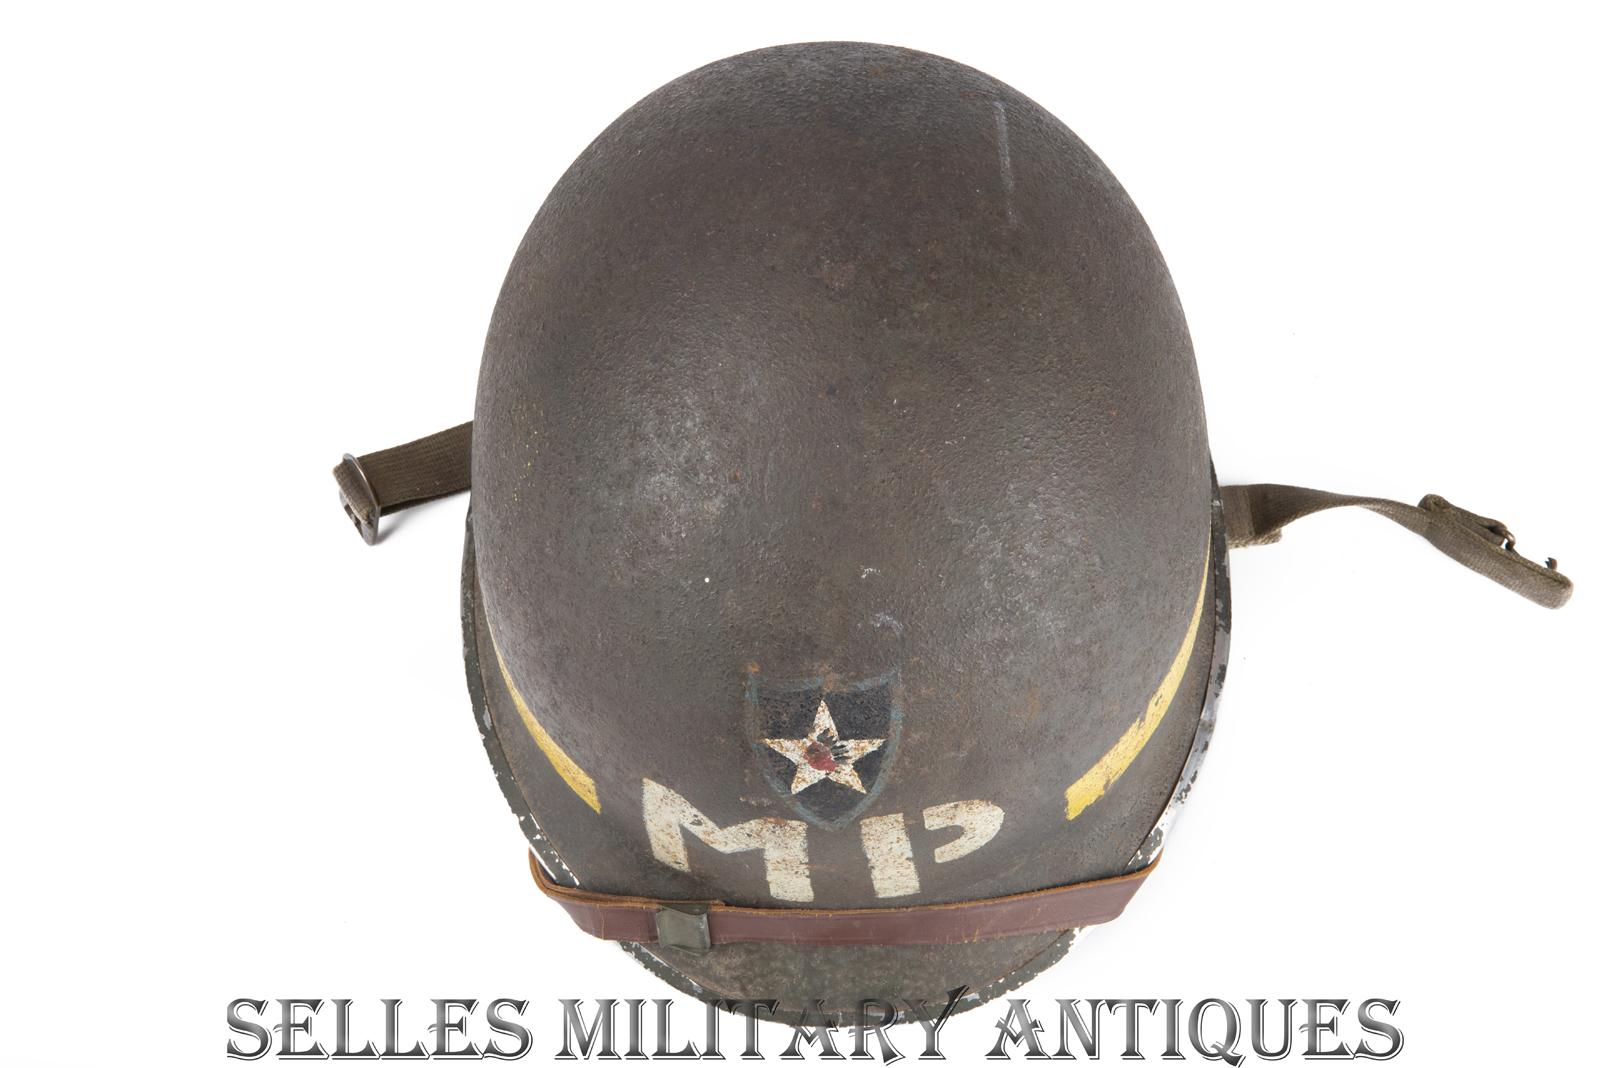 Casque M1 Military Police 2nd I.D. US (5)